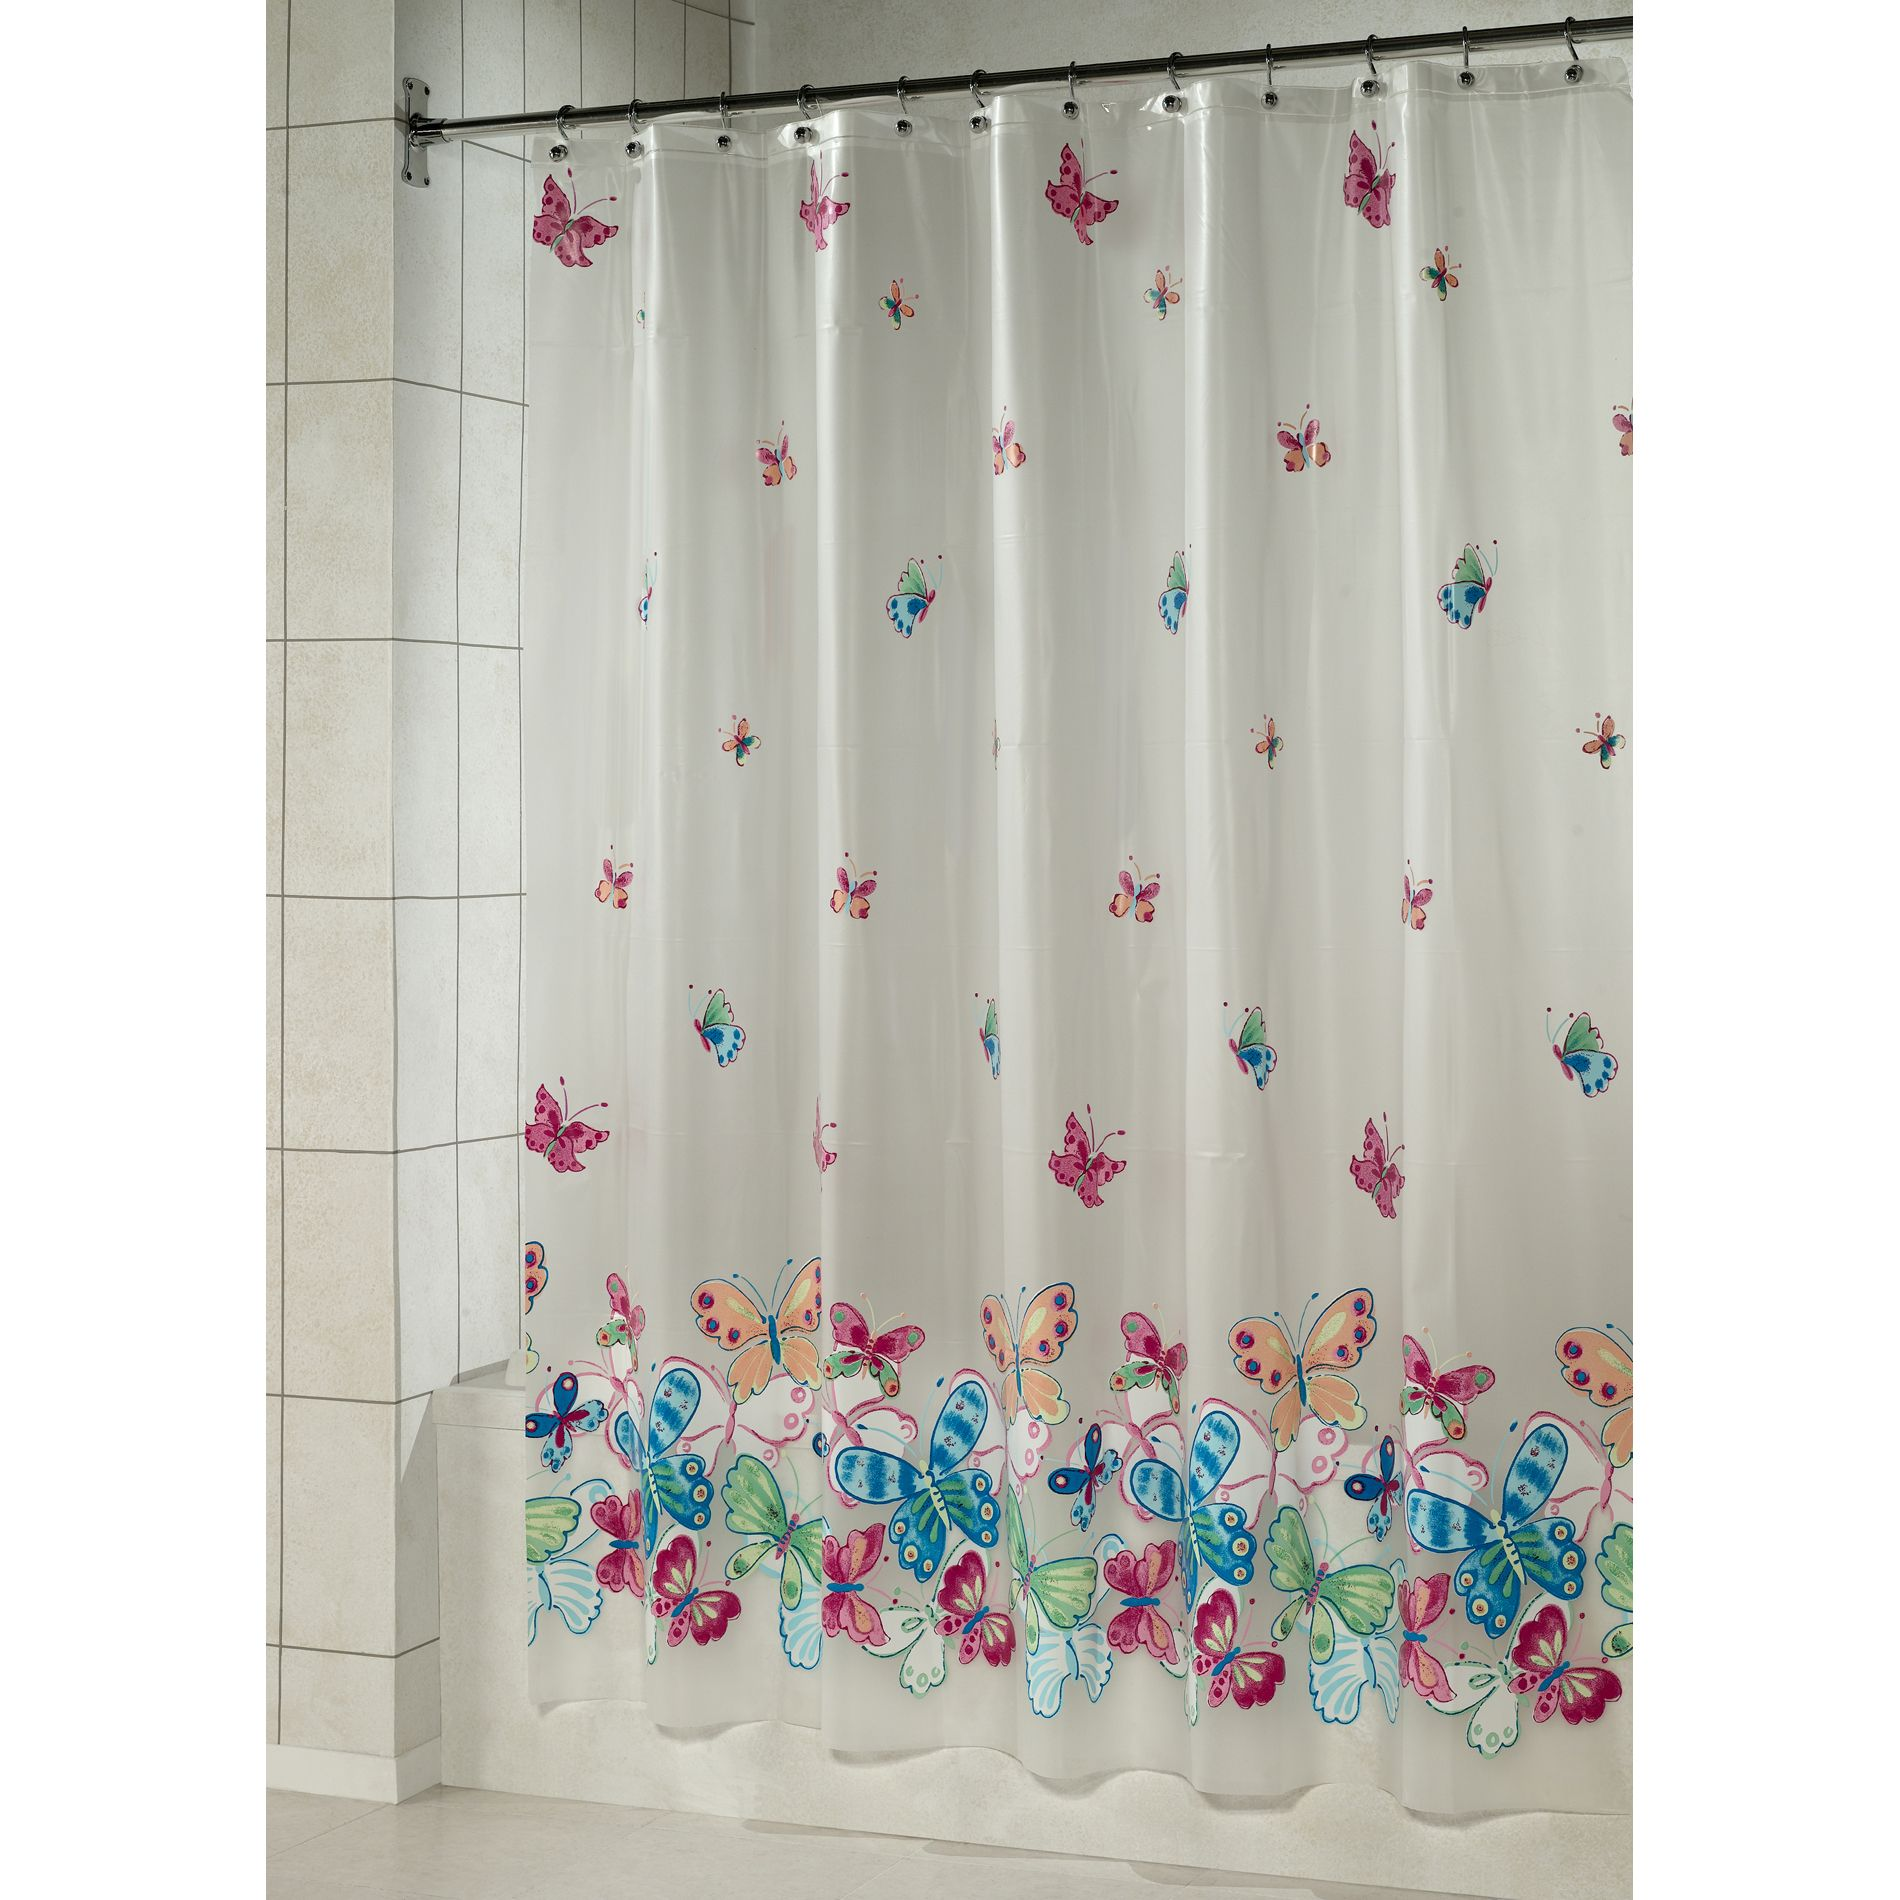 Essential home shower curtain butterfly border vinyl peva home bed bath bath bathroom accessories bath accessories